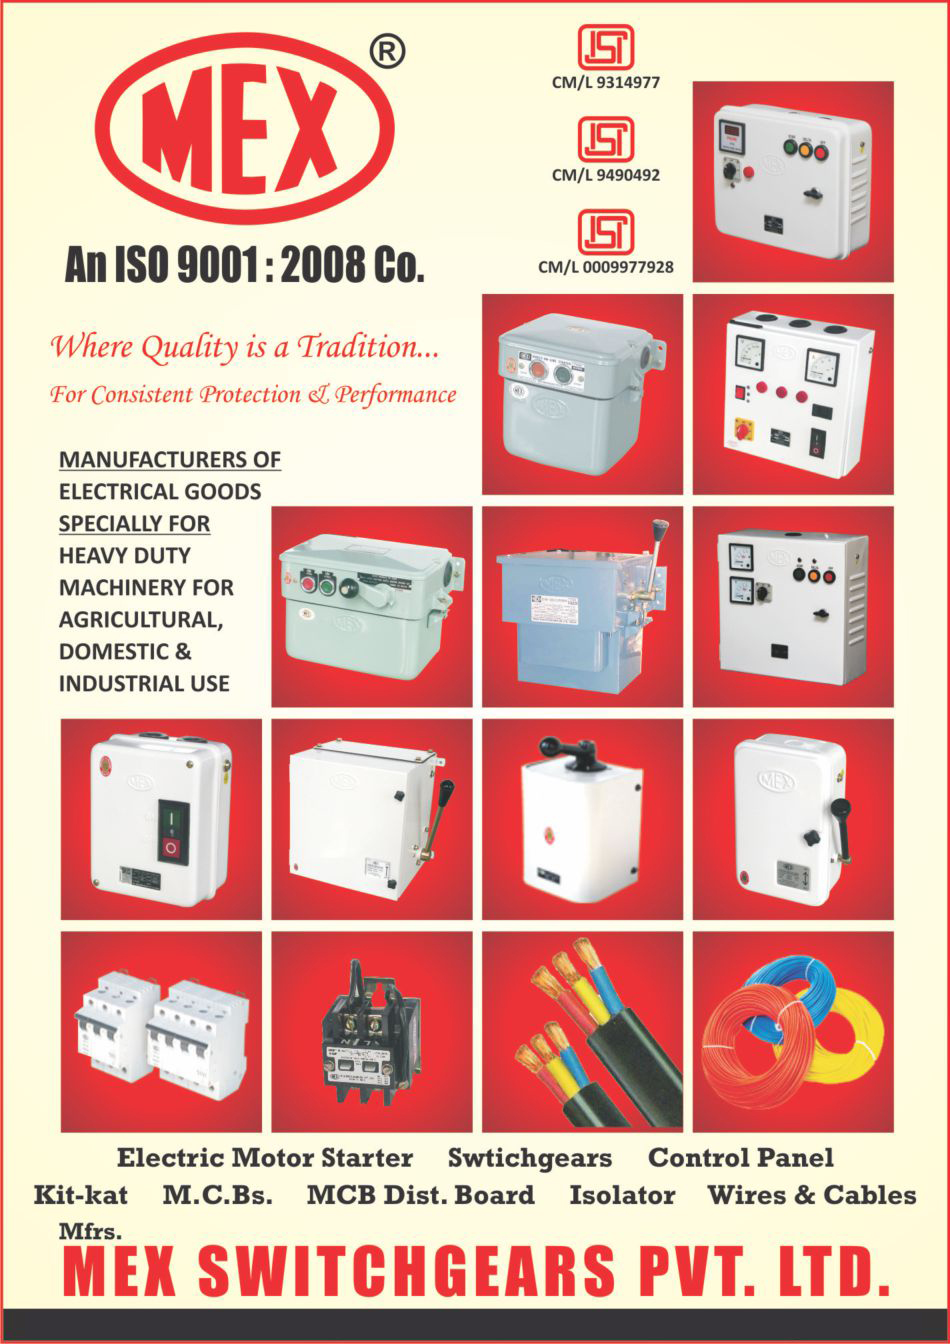 Electrical Goods, Electric Motor Starters, Switchgears, Switch Gears, Control Panels, Kit Kat Fuse Units, MCB Distribution Boards, Isolators, Wires, Cables, Agricultural Machinery, Domestic Machine, Industrial Machine